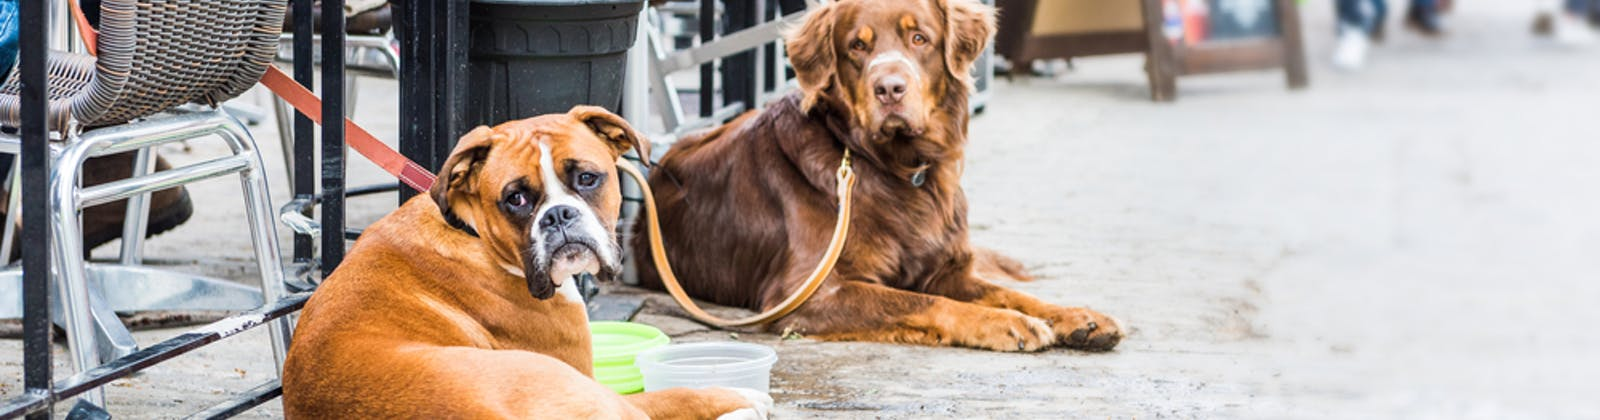 two dogs sitting outside a restaurant